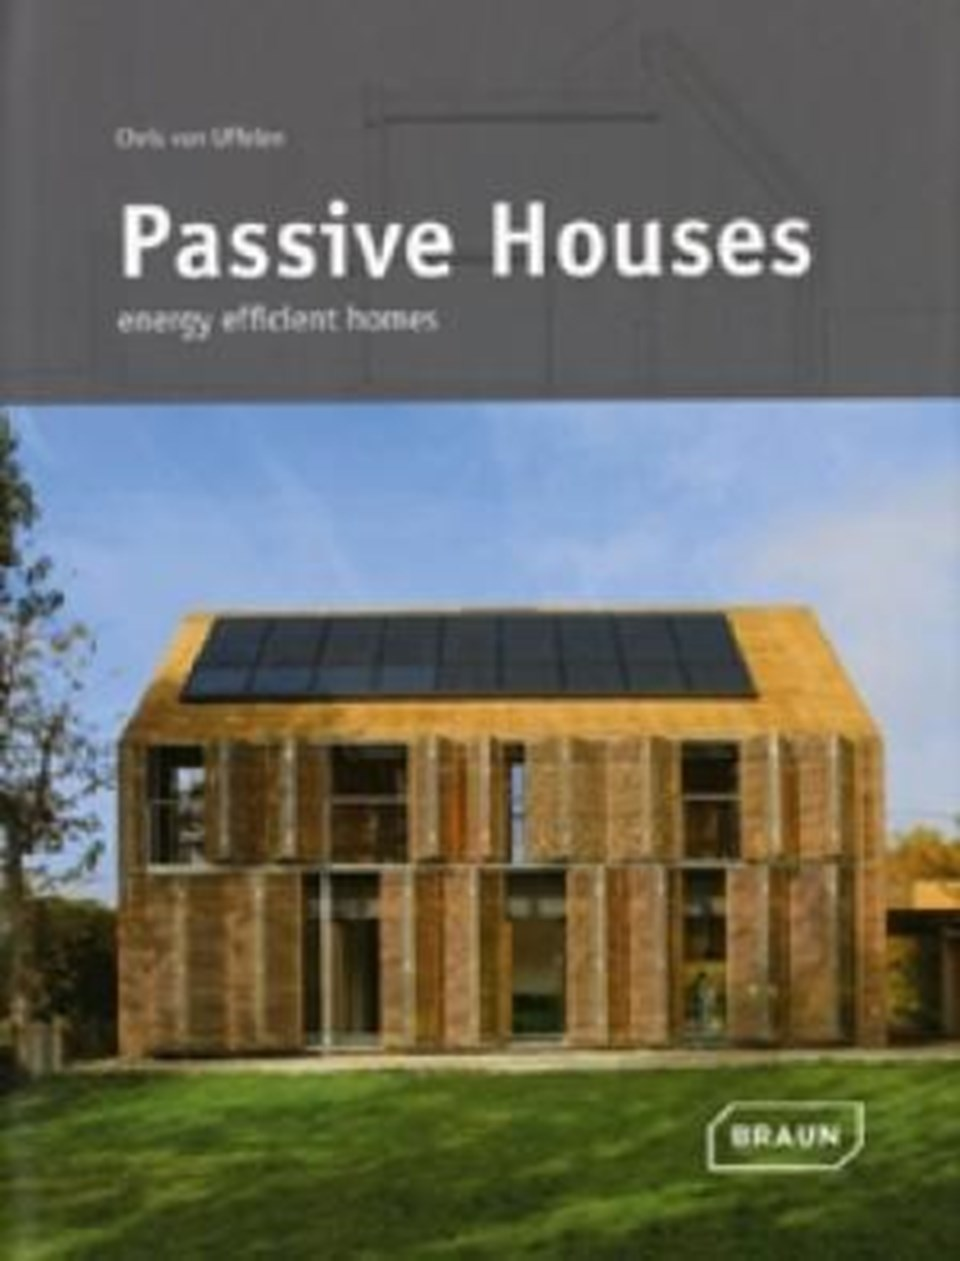 Passive Houses - energy efficient homes